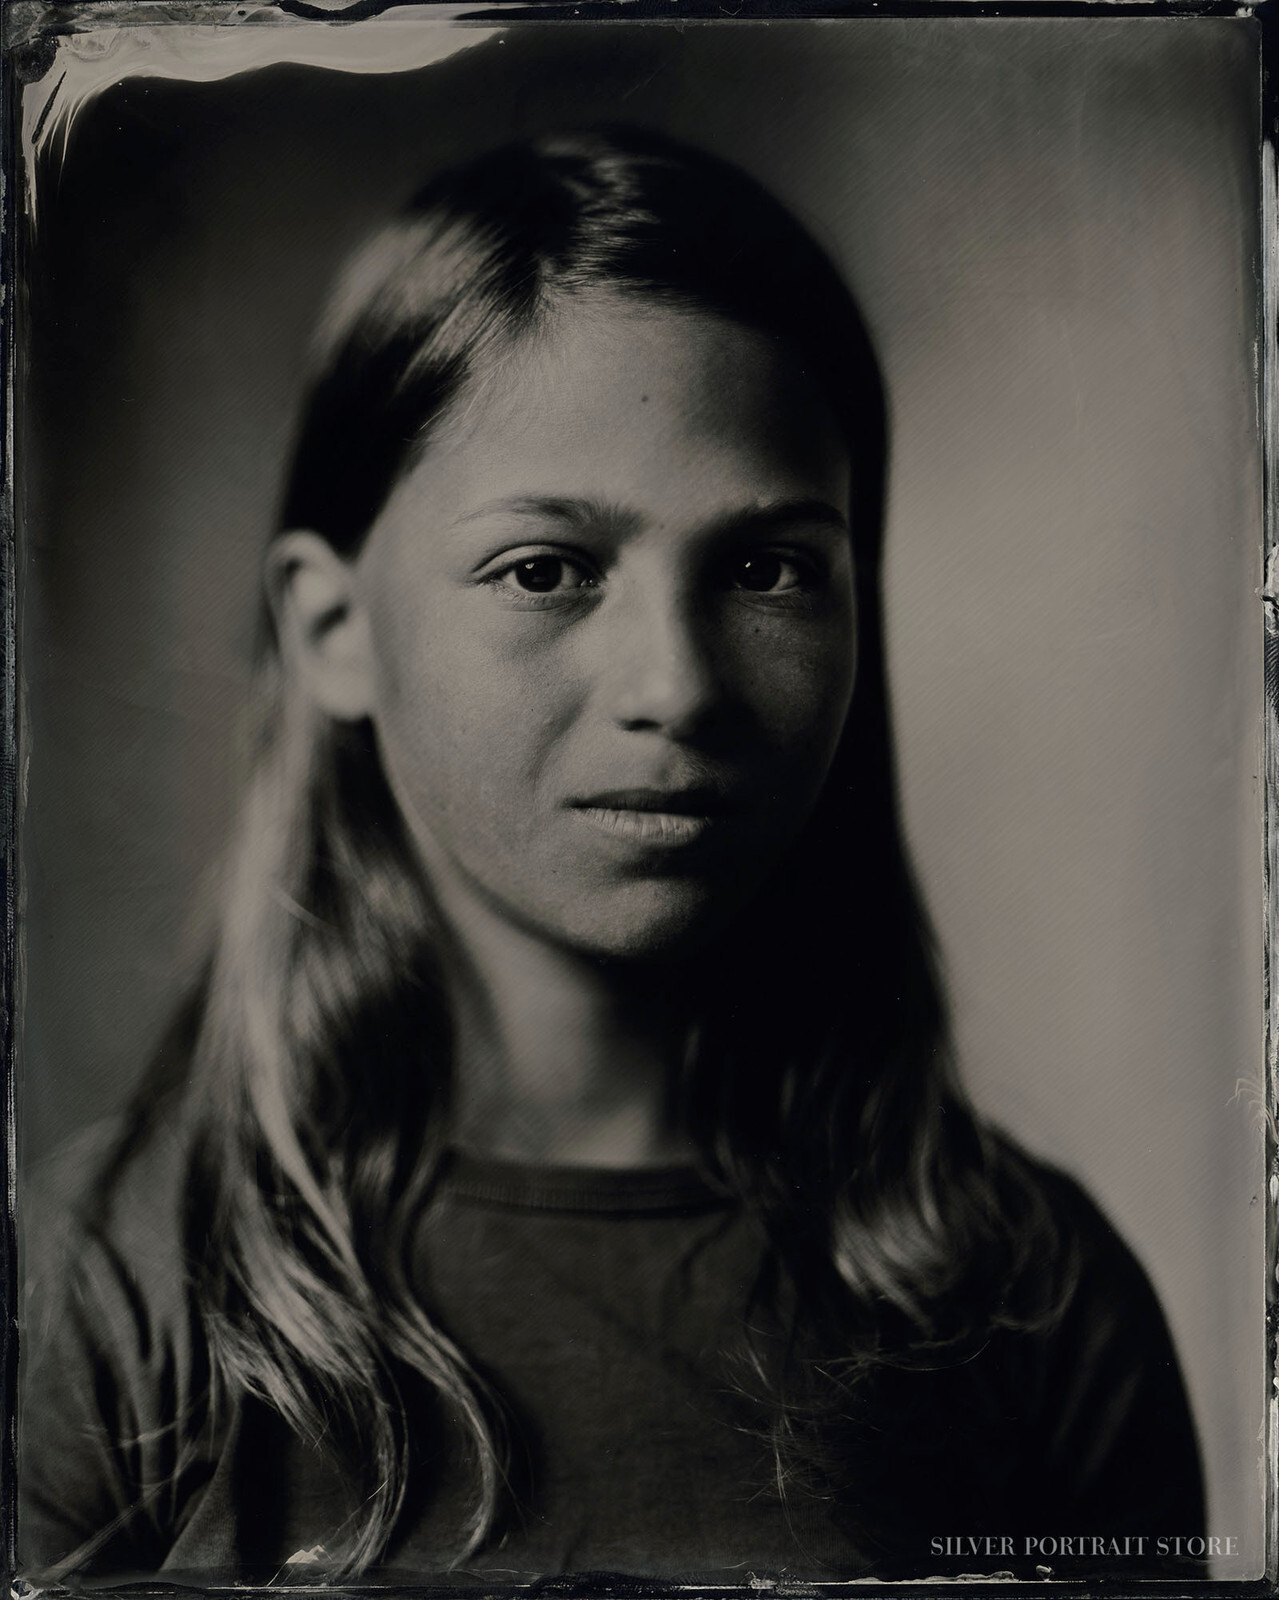 Finn-Silver Portrait Store-Wet plate collodion-Black glass Ambrotype 20 x 25 cm.